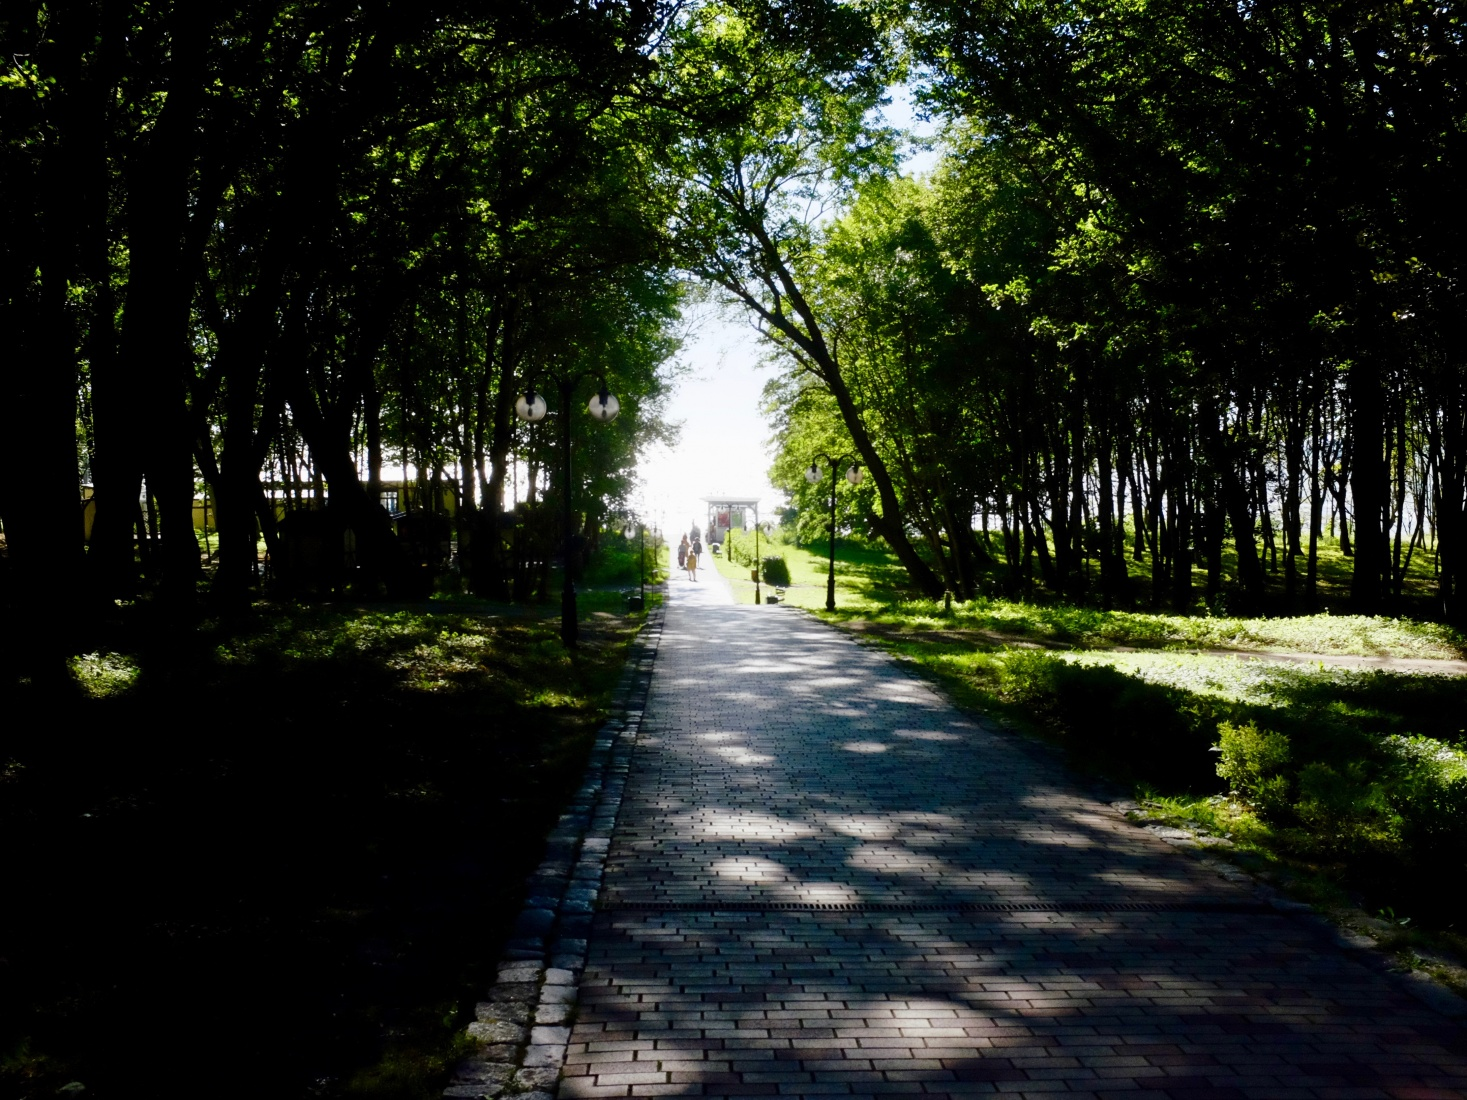 Tree lined pathway leading to the beach in Becker Park, Yantarny, outside Kaliningrad, Russia.